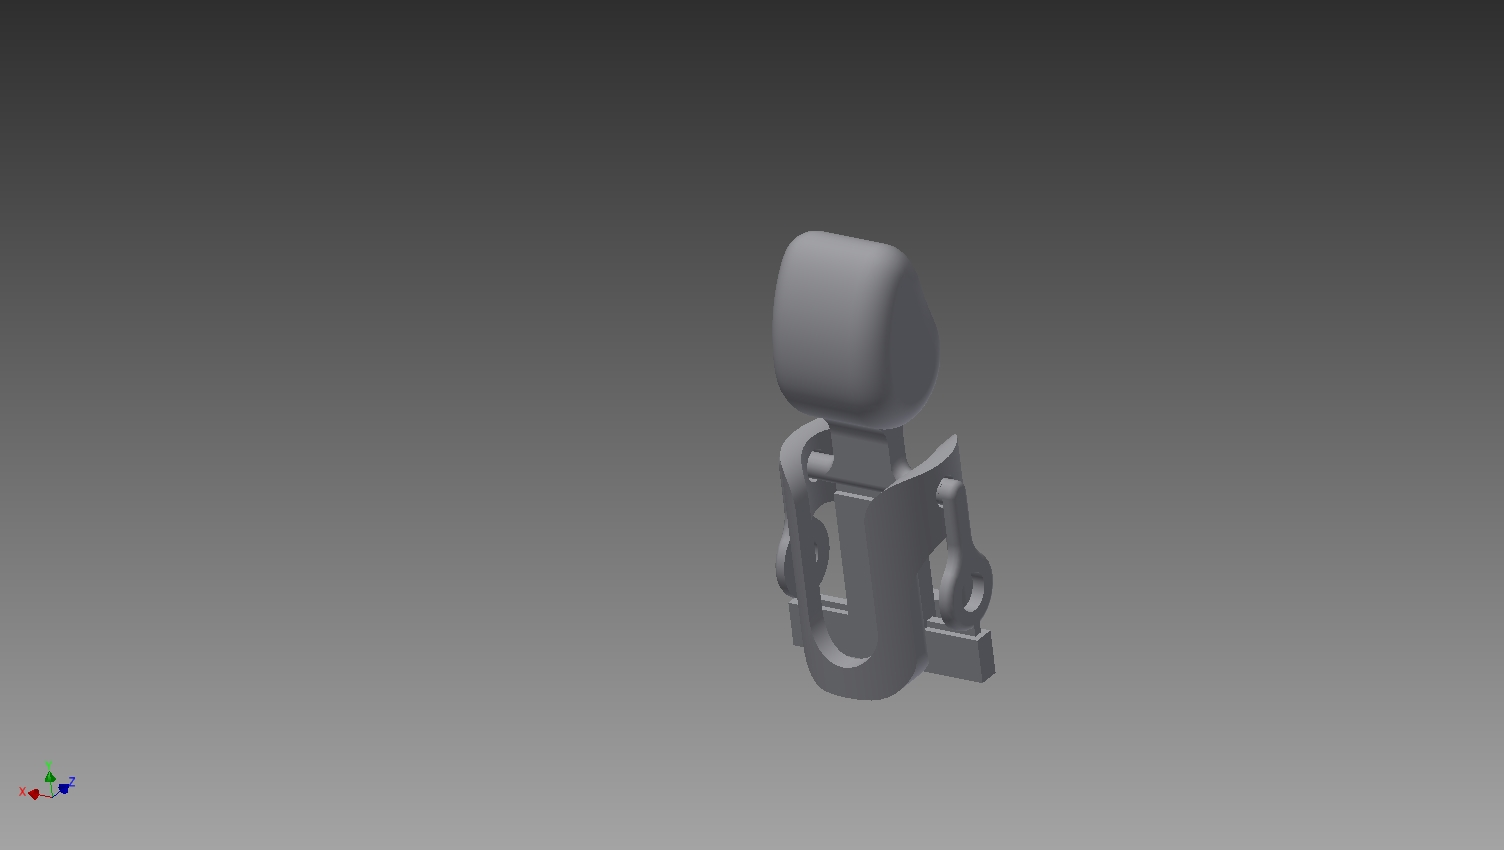 DigiTouch Prosthetic rendering